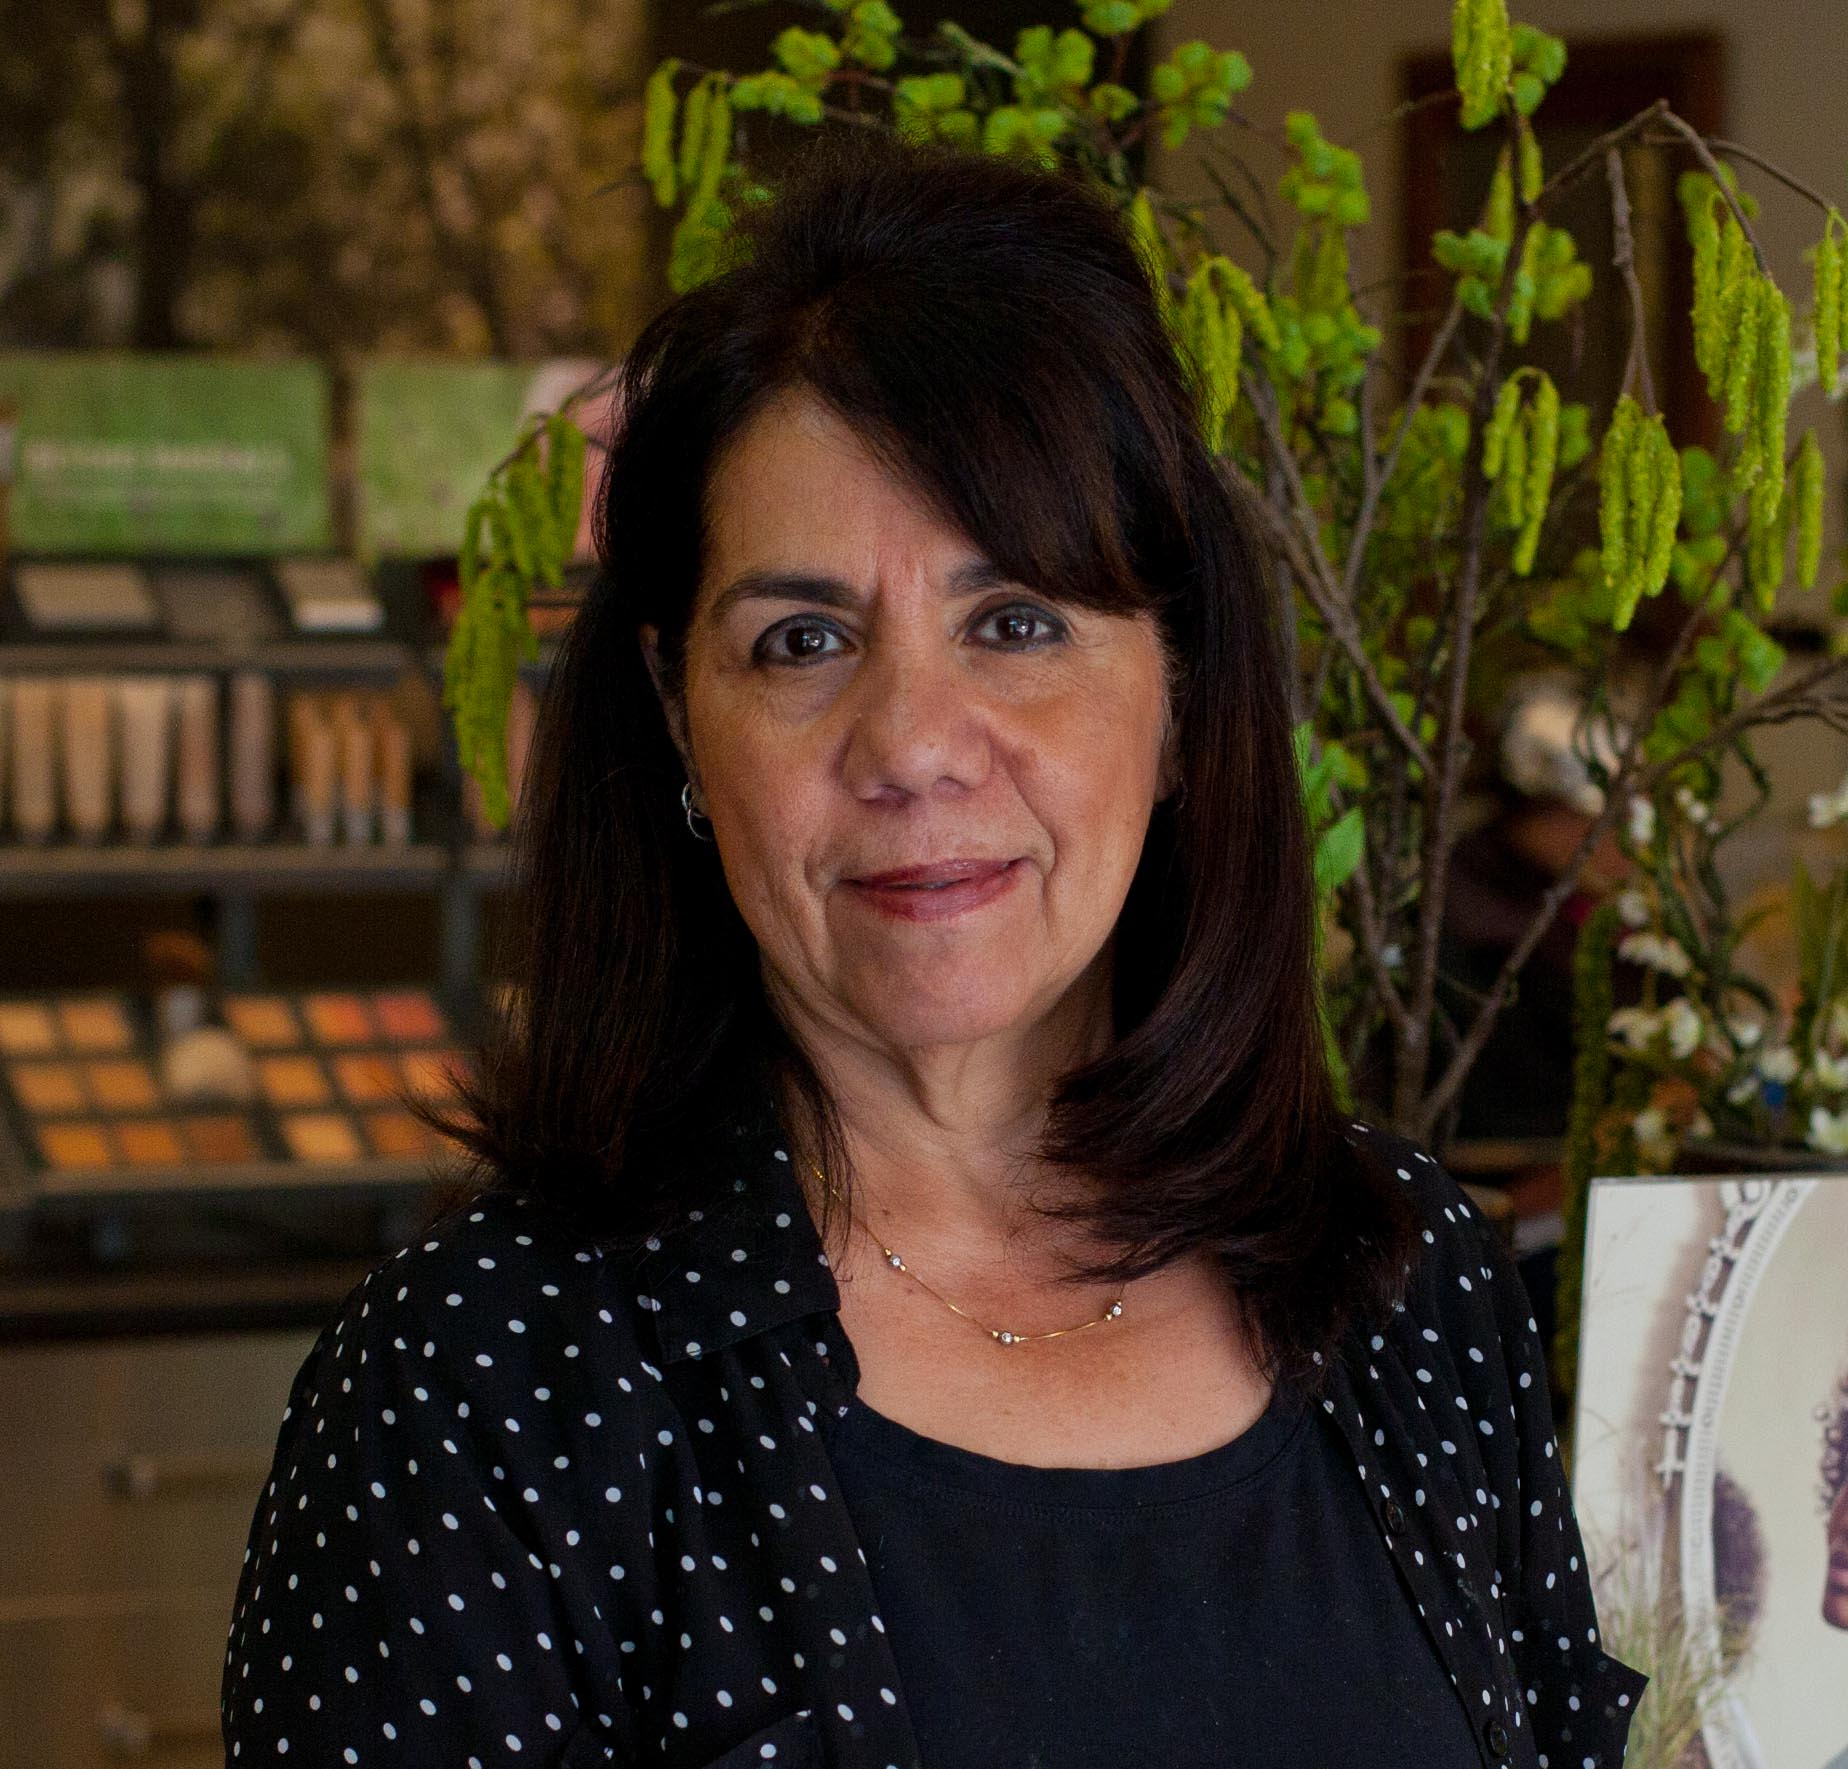 Maria - Maria is a hair legend that has a huge following of patrons of her craft. She has over 20 years of experience styling hair. She is also a licensed aesthetician. Her skincare rituals in the spa room leave you glowing.